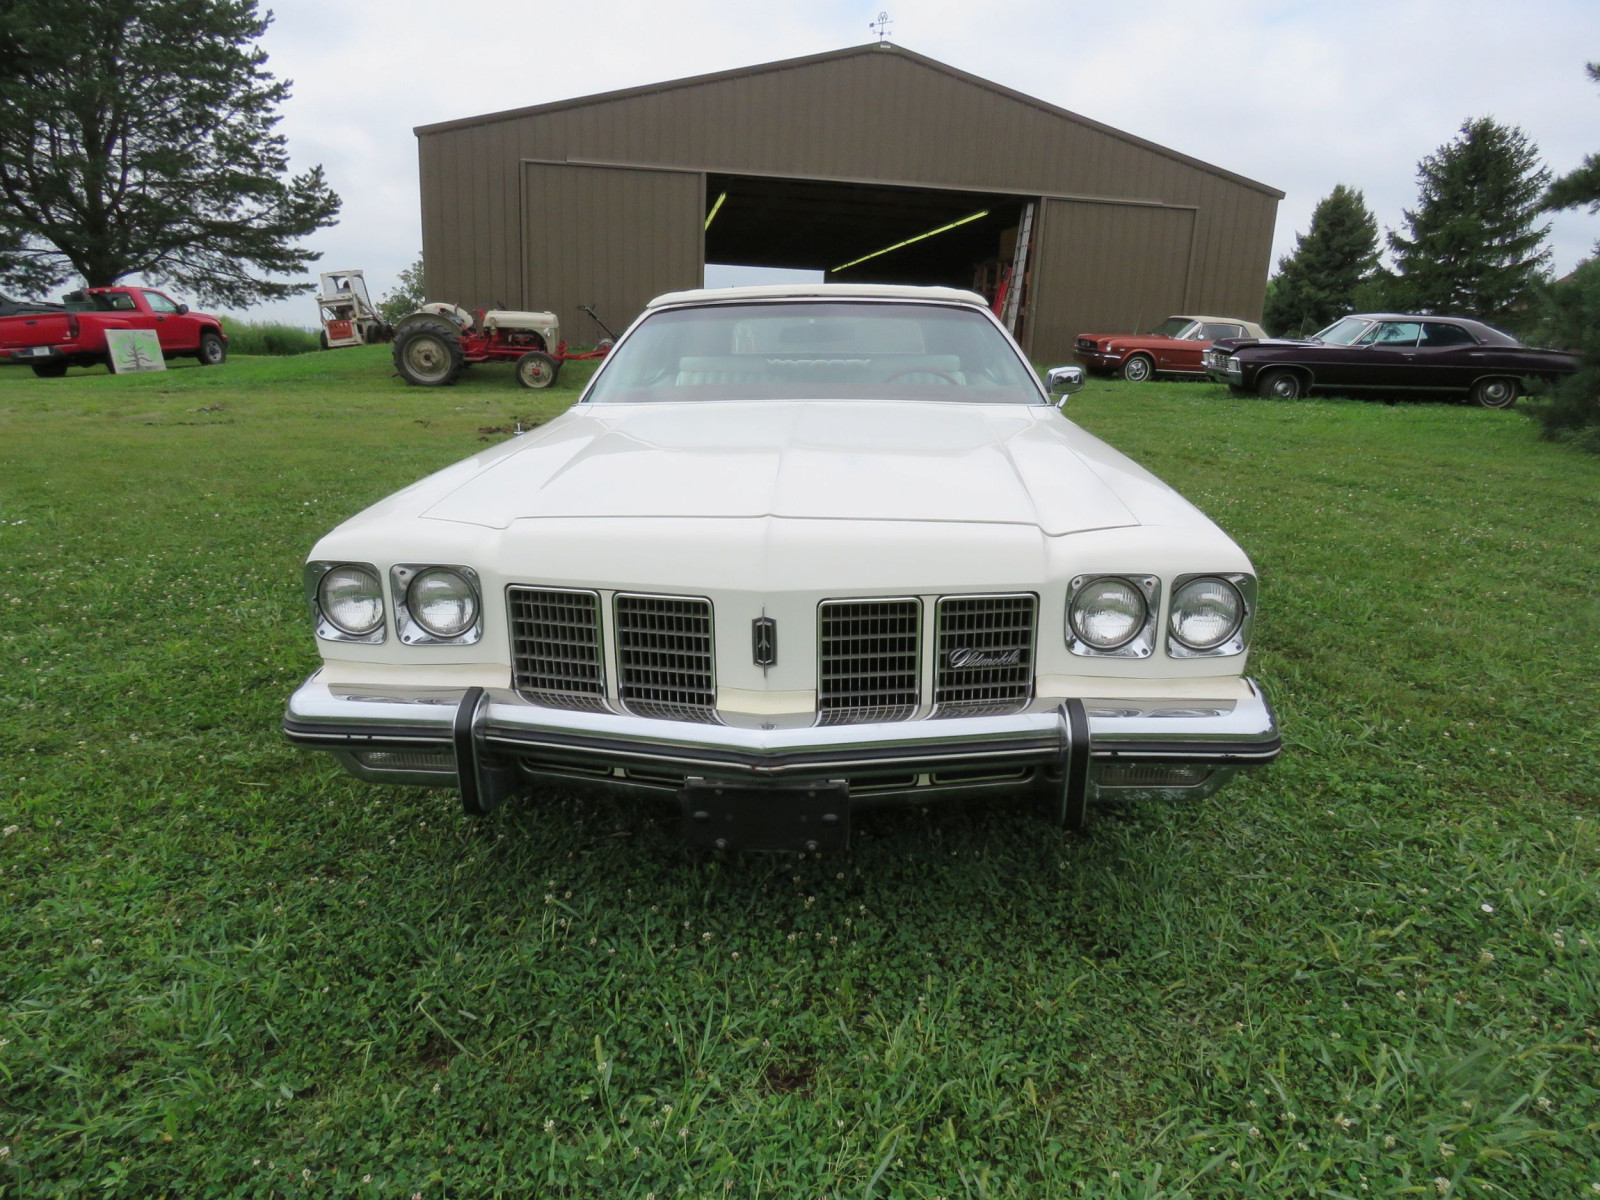 1975 Oldsmobile Delta 88 Convertible - Image 2